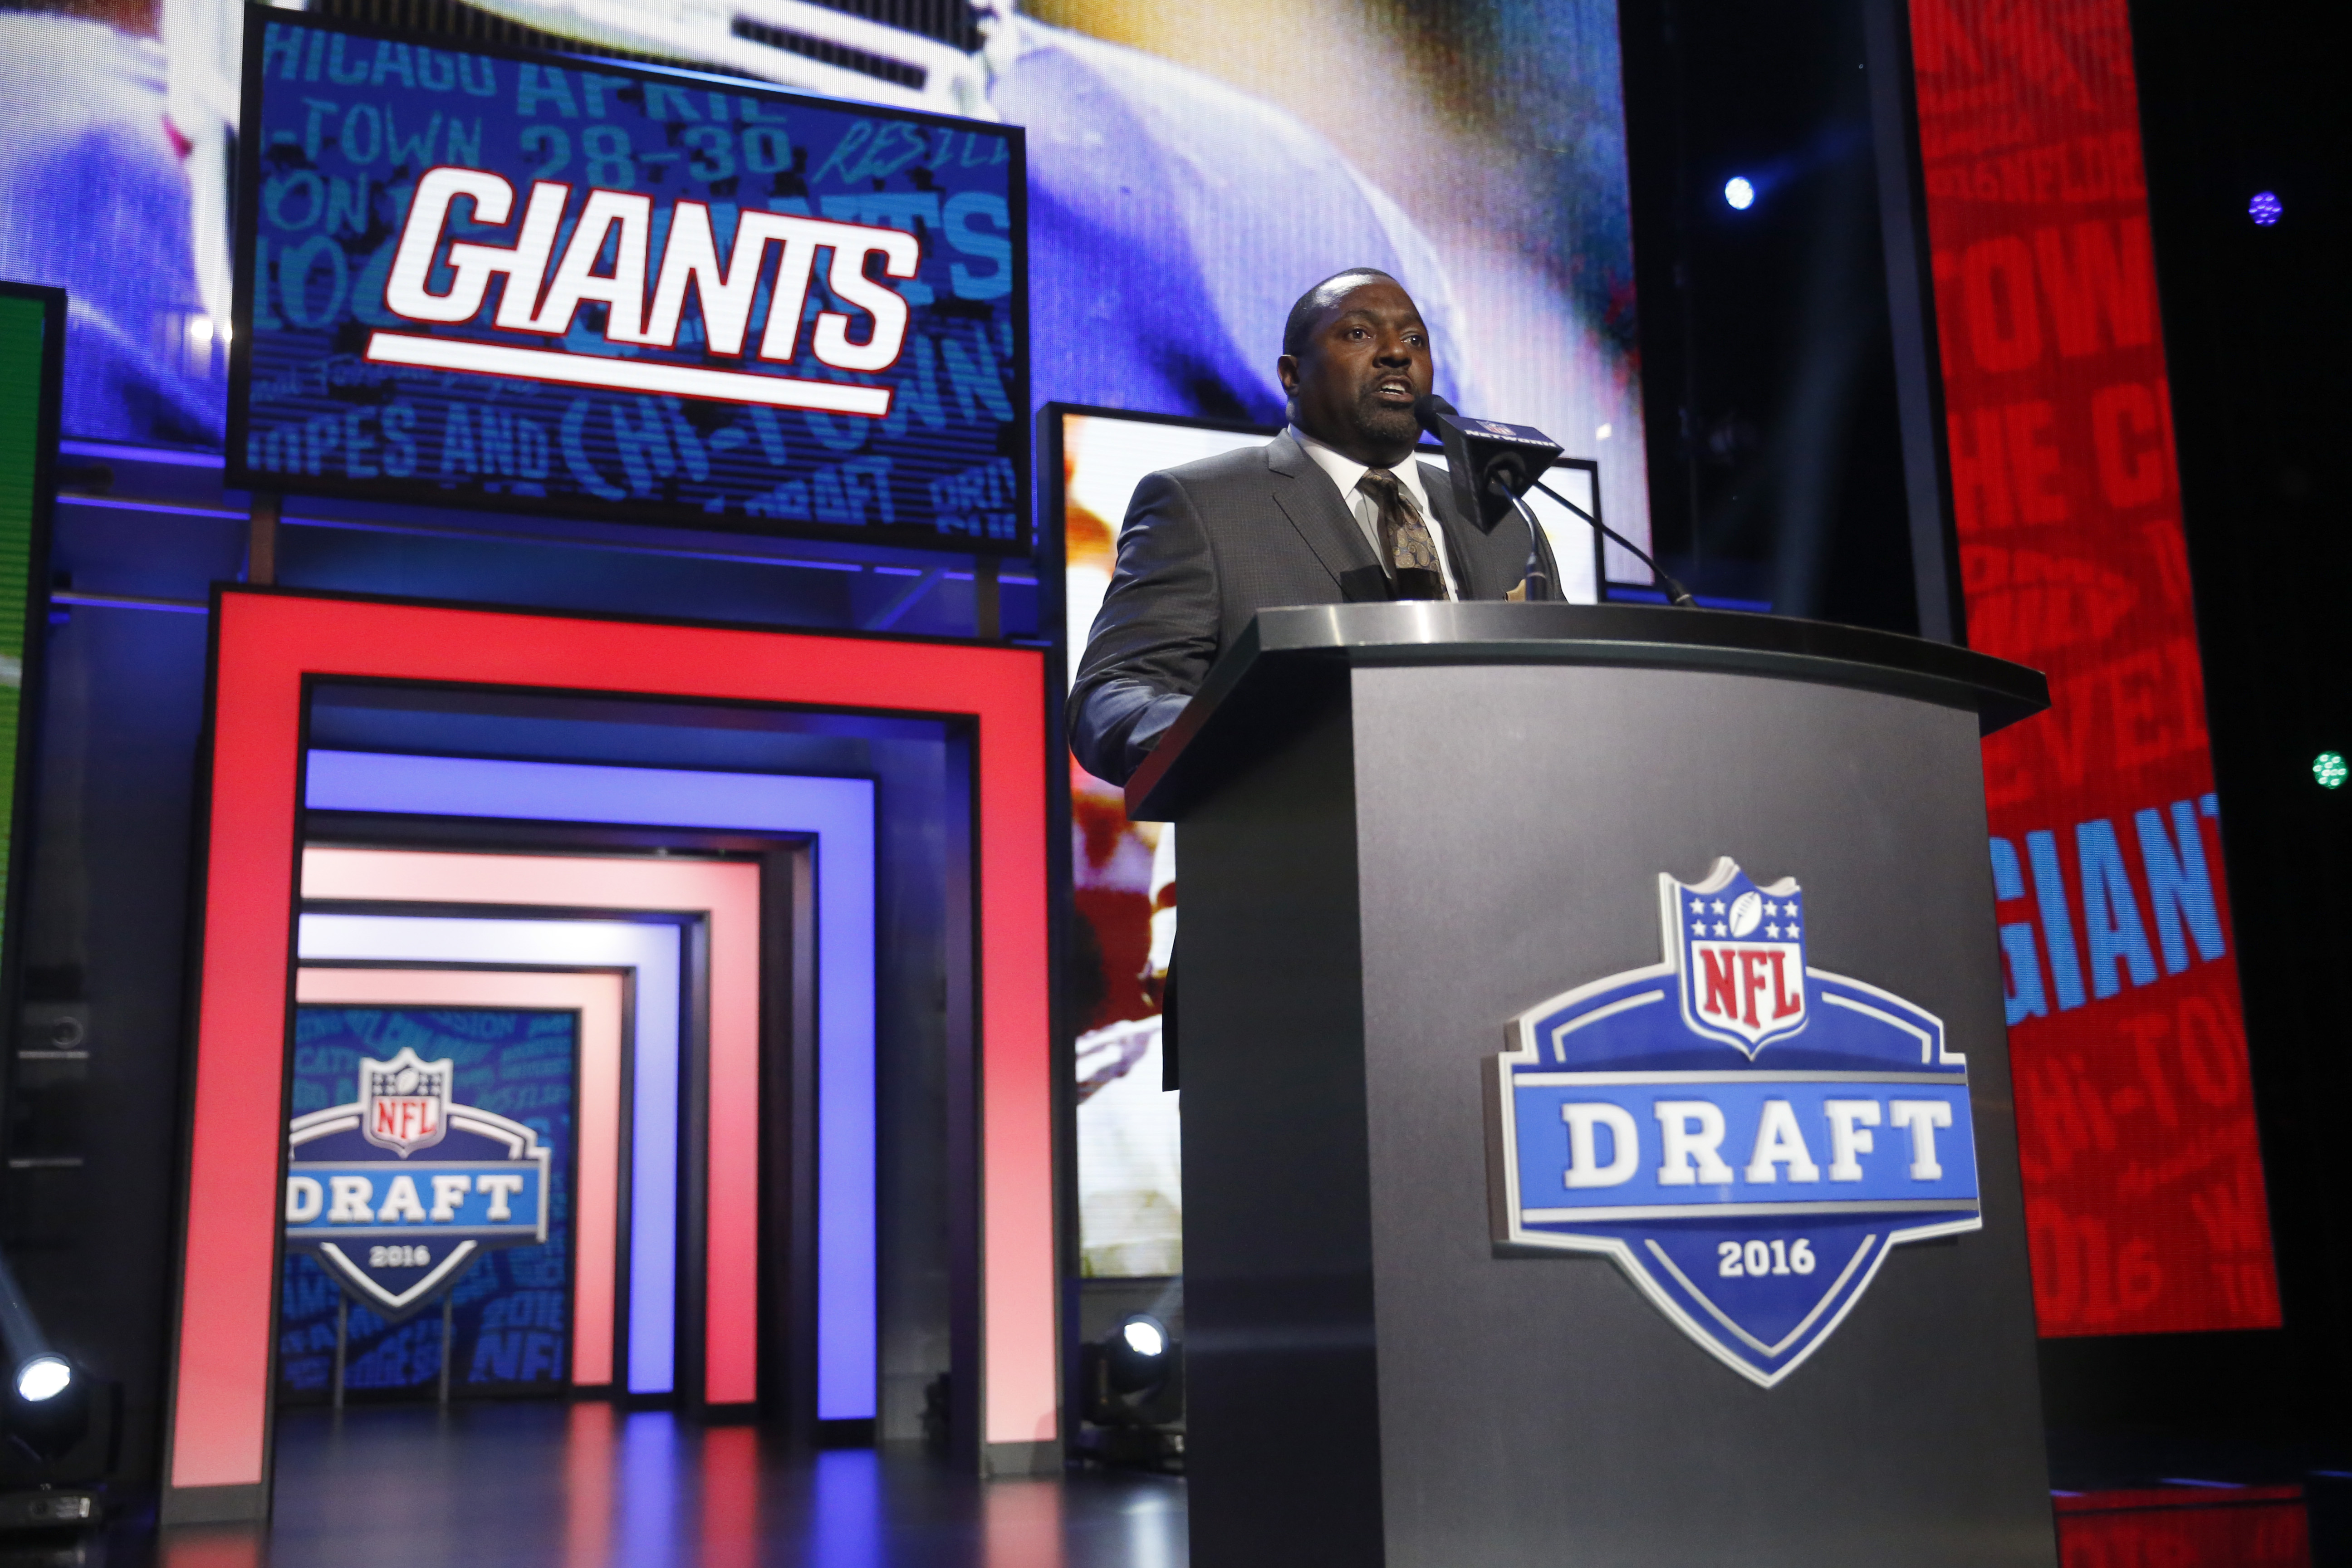 Former NFL player Rodney Hampton announces that the New York Giants selects Oklahomas Sterling Shepard as the 40th pick in the second round of the 2016 NFL football draft, Friday, April 29, 2016, in Chicago. (AP Photo/Charles Rex Arbogast)